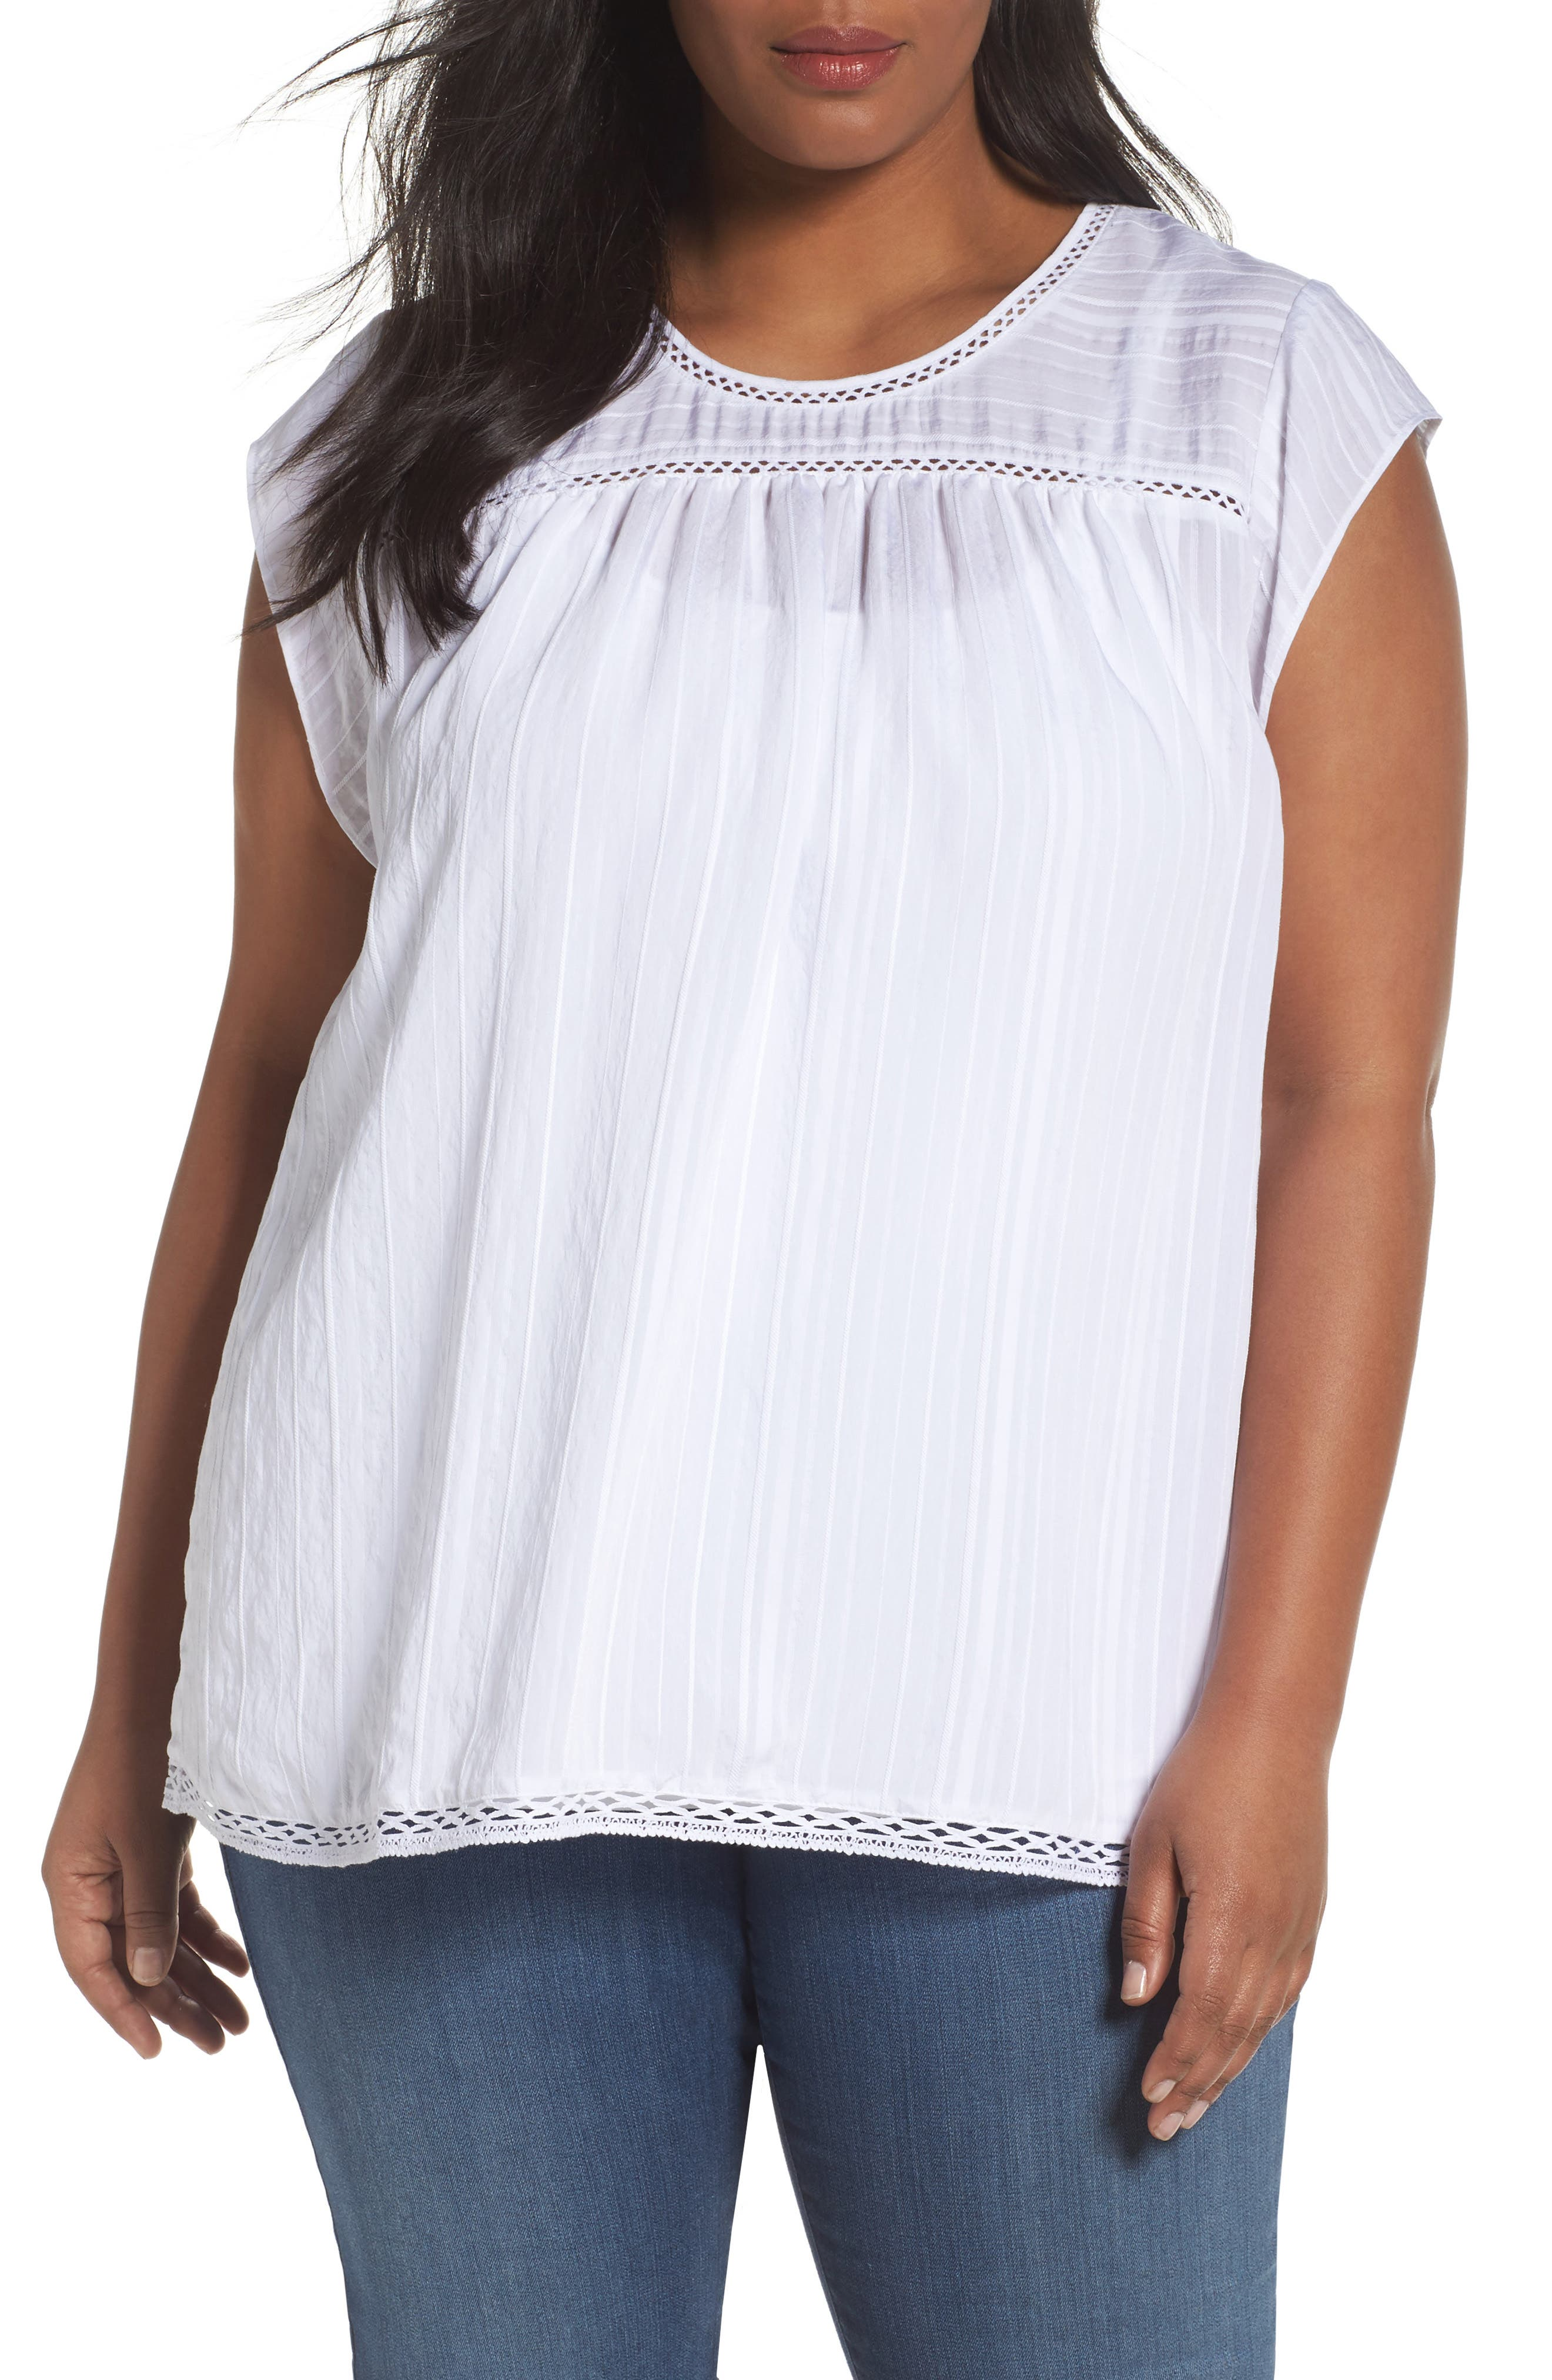 Alternate Image 1 Selected - Sejour Cap Sleeve Top (Plus Size)